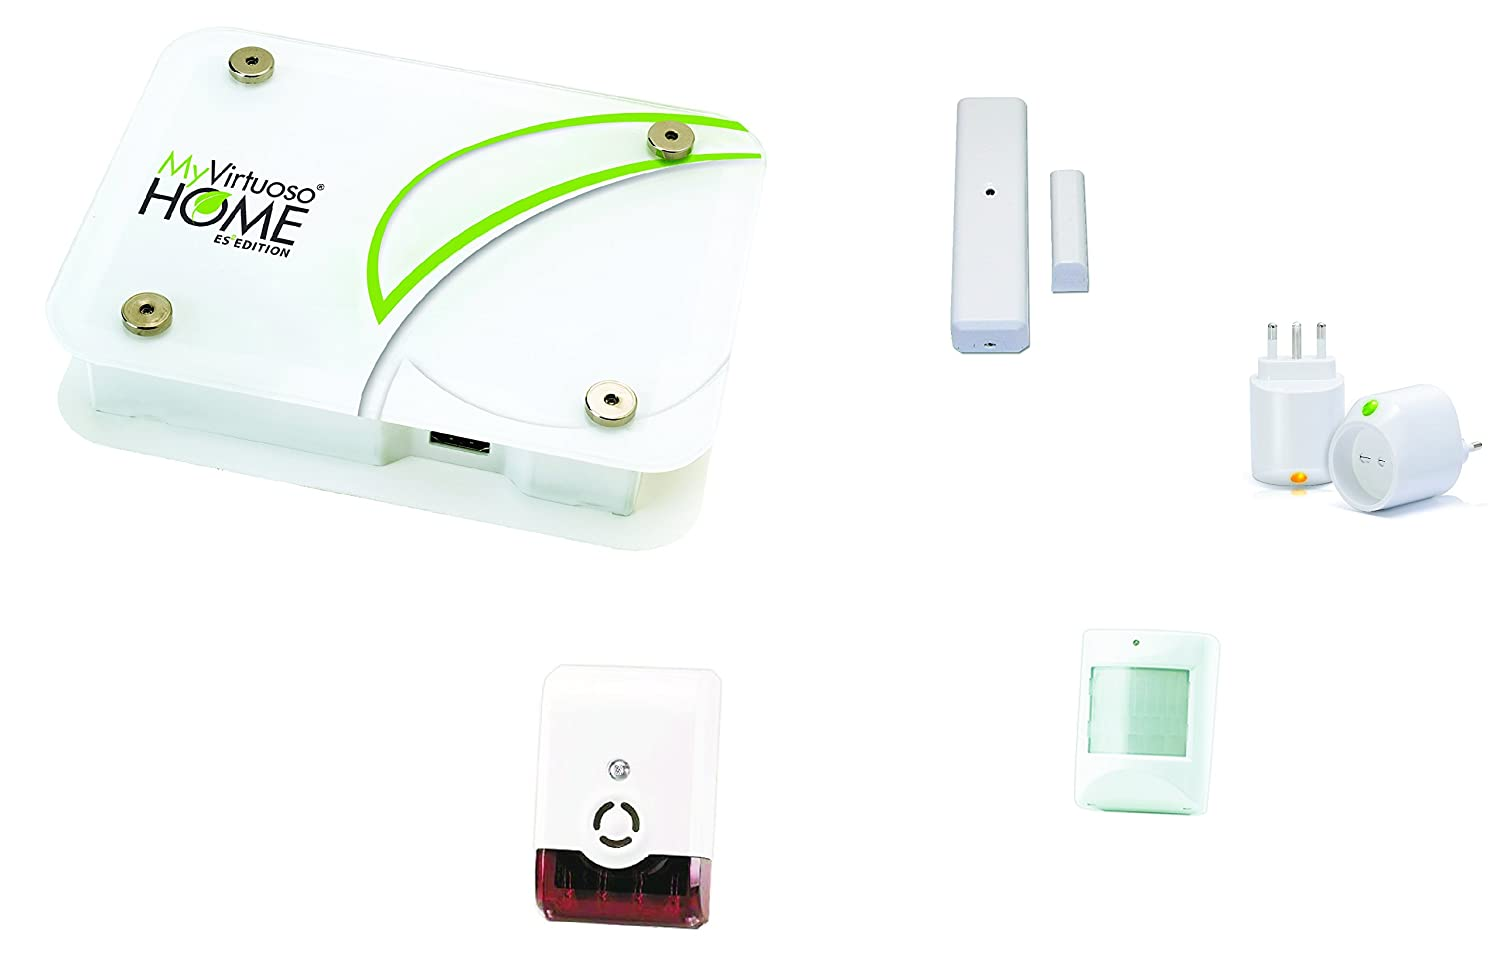 Kit de domotica Alarma Base myvirtuoso Home ES2: Amazon.es ...